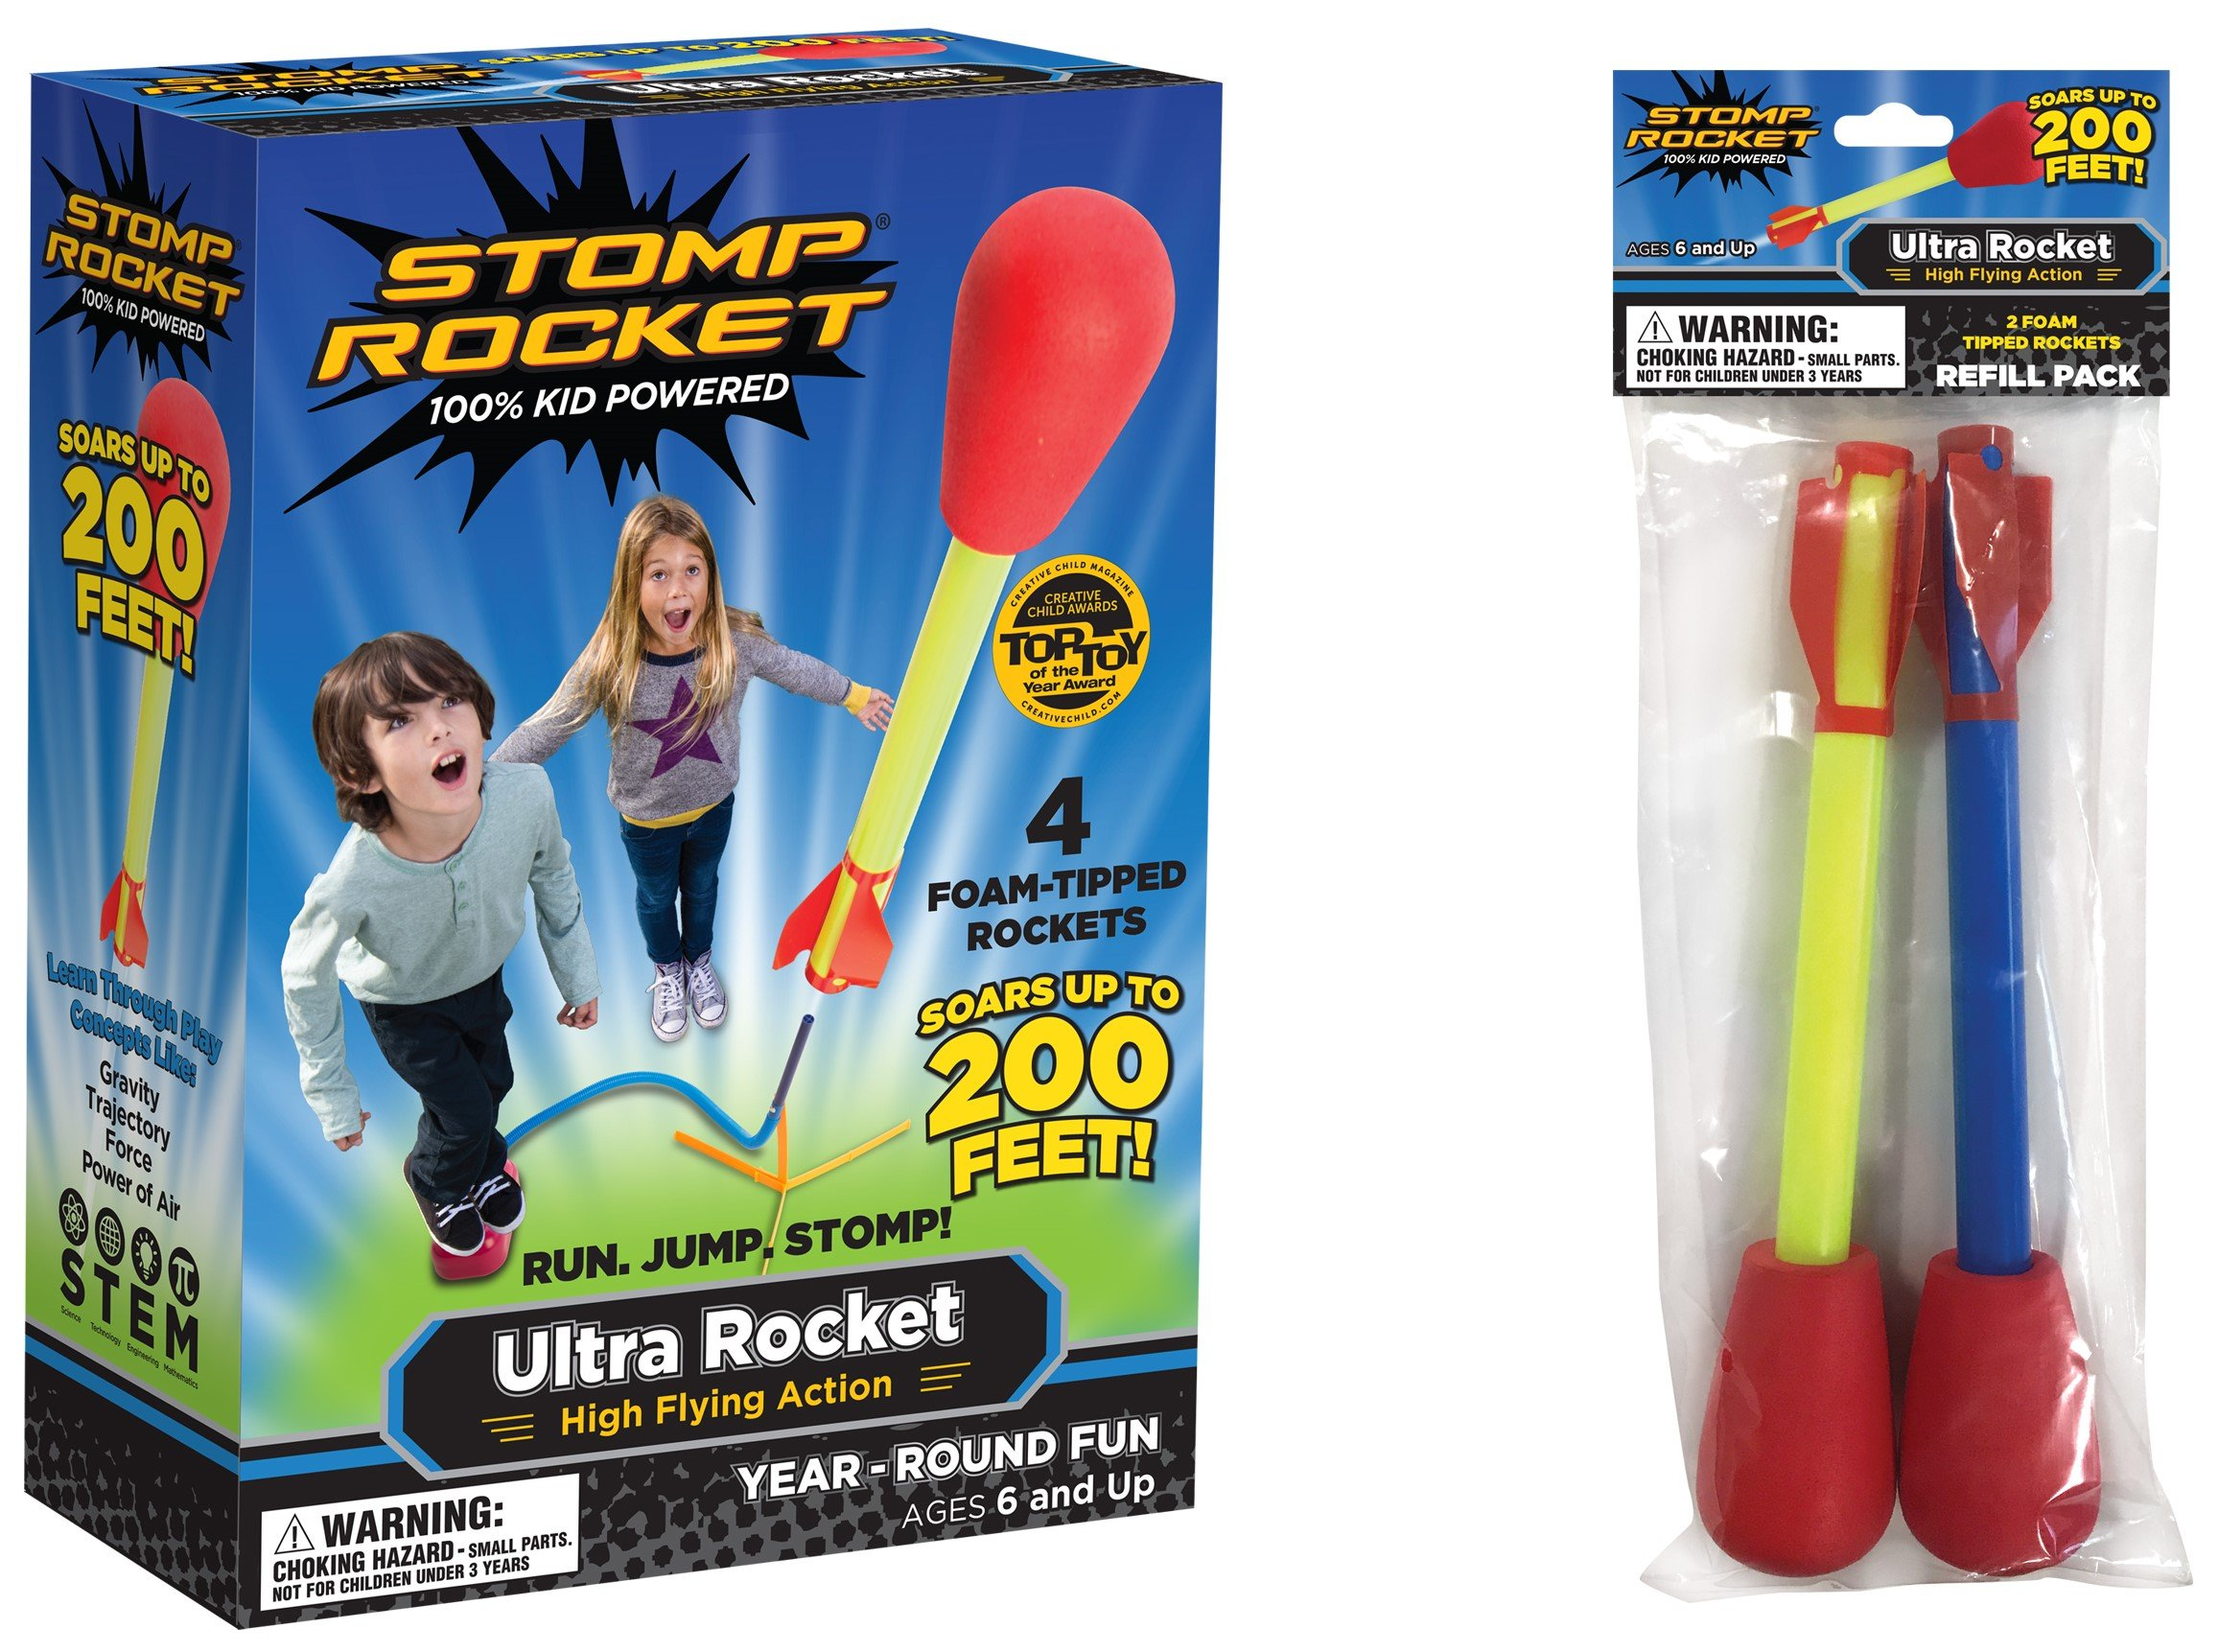 Stomp Rocket Ultra Rocket with Ultra Rockt Refill Pack, 6 Rockets [Packaging May Vary]